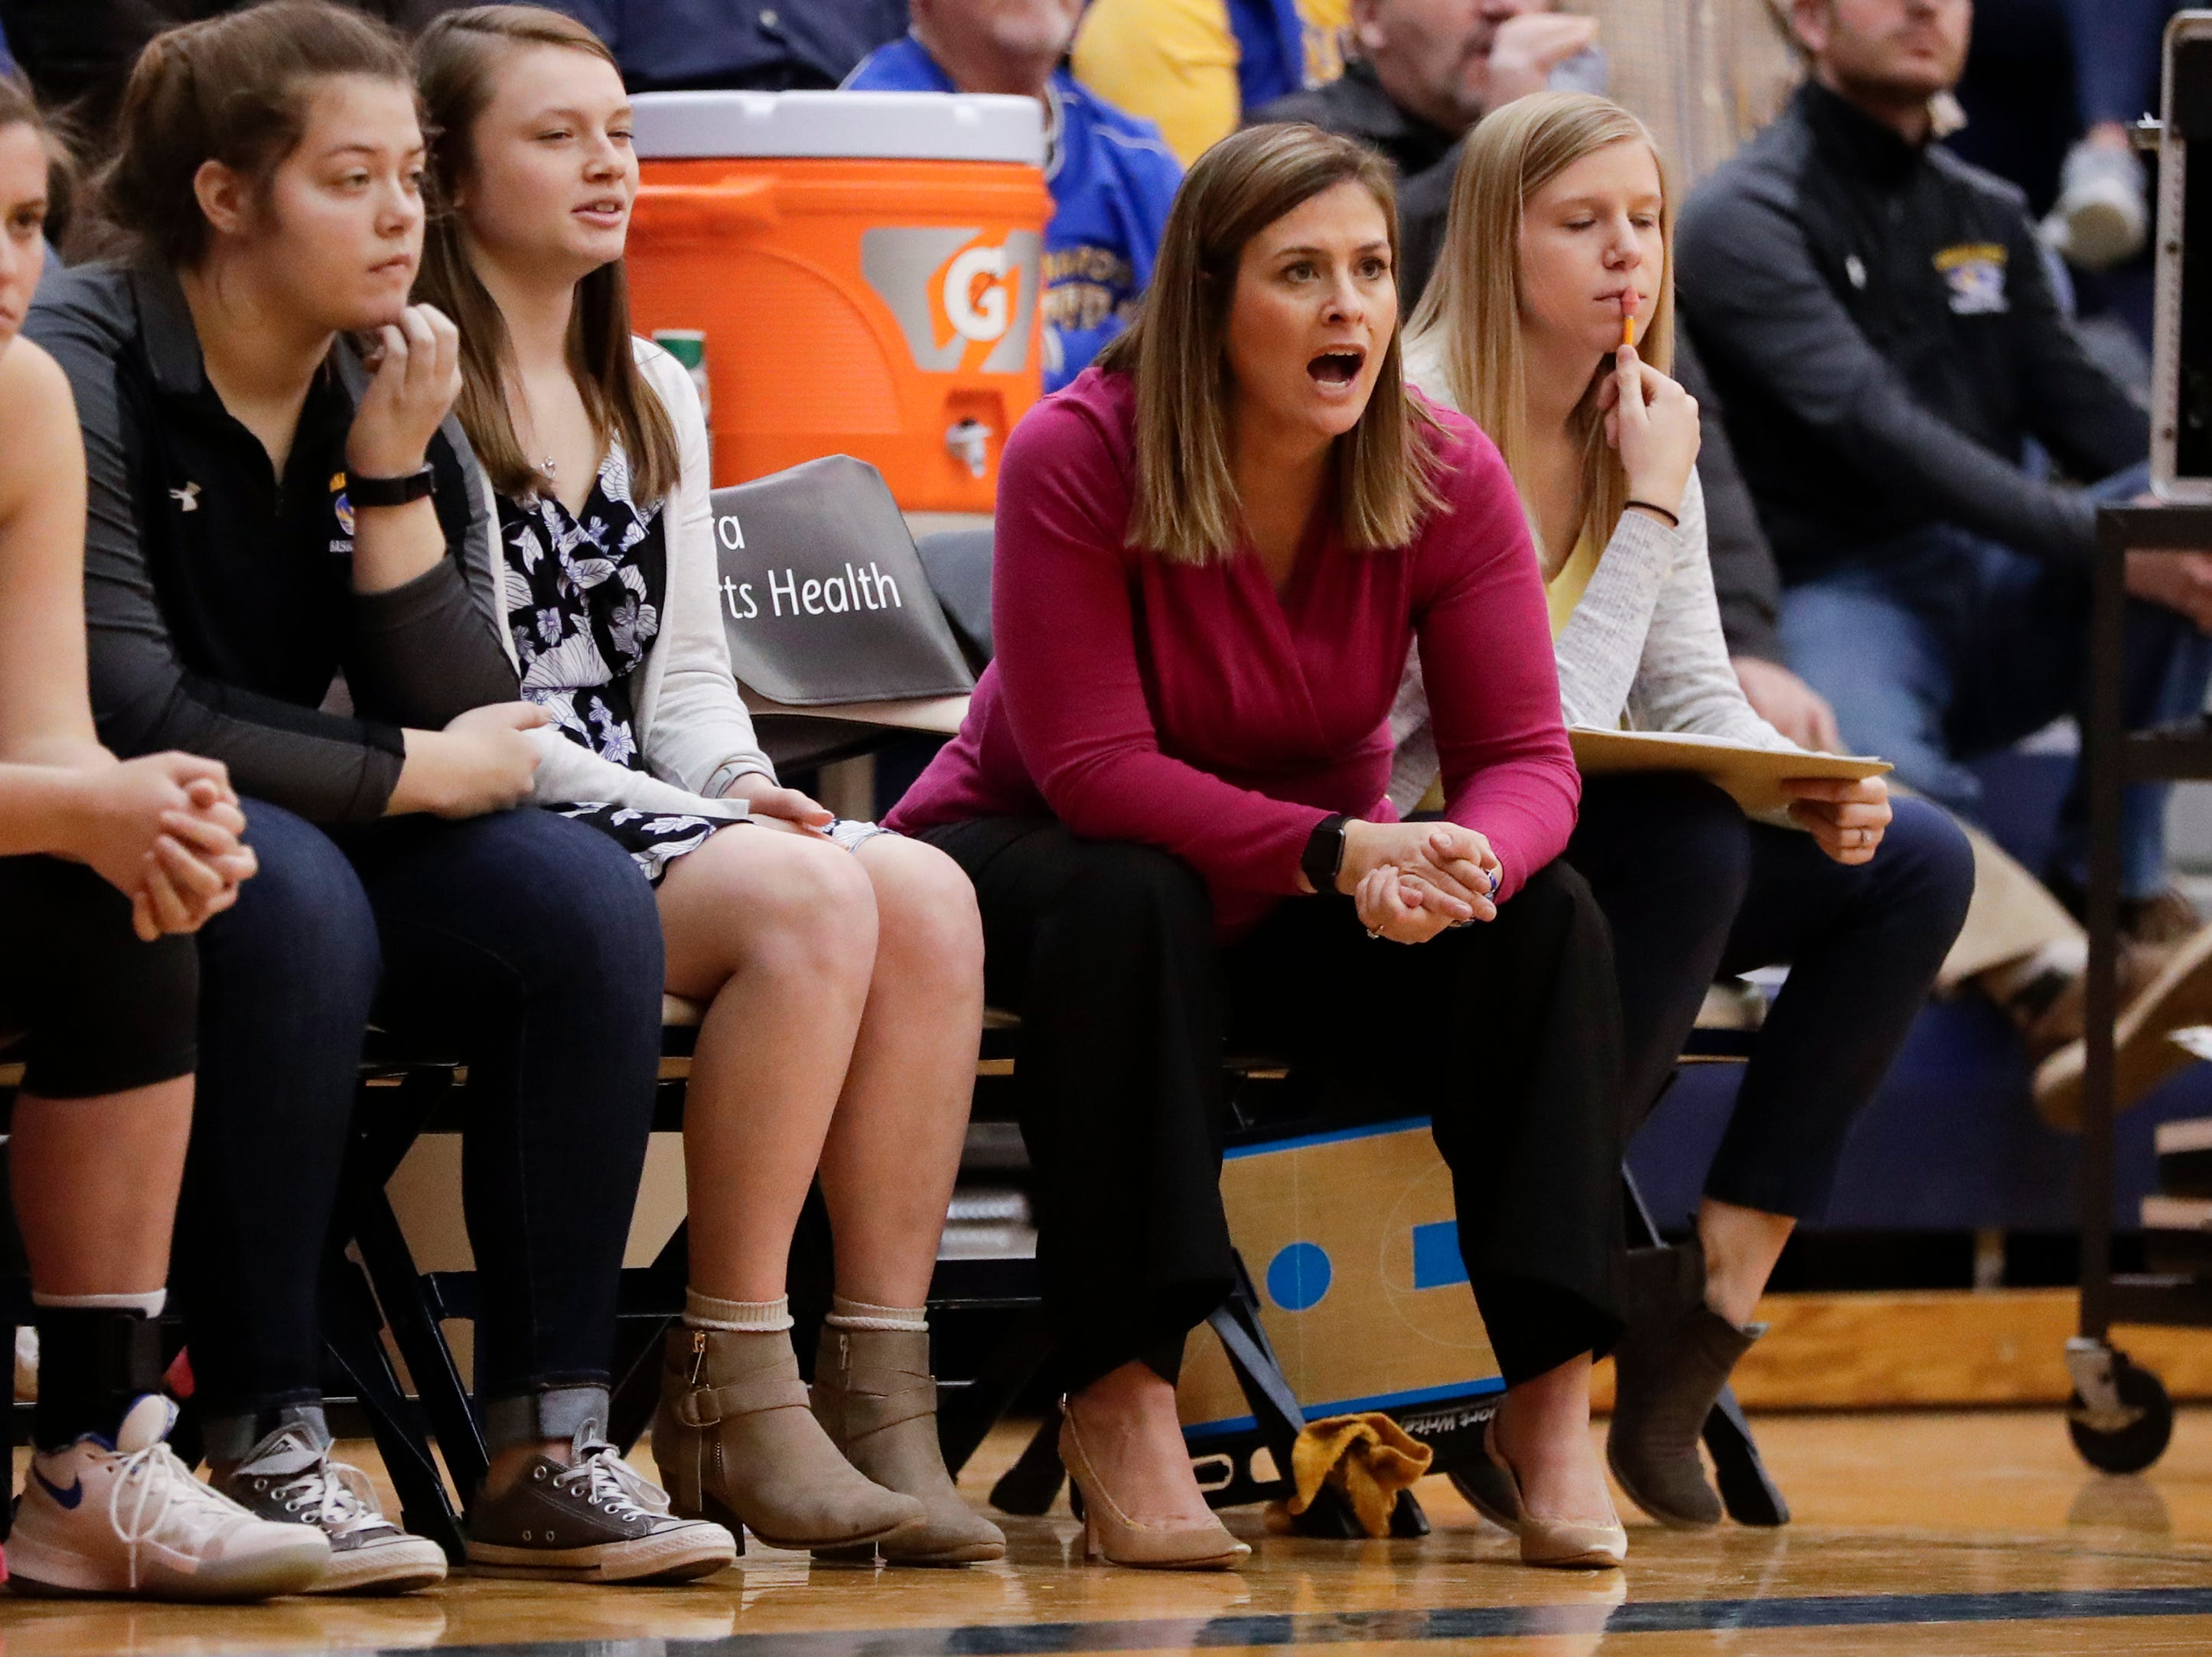 Howards Grove's head coach Heidi Georgeff makes call to her team against Milwaukee Academy of Science during a WIAA Division 4 sectional championship game at Sheboygan North High School Saturday, March 2, 2019, in Sheboygan, Wis. Joshua Clark/USA TODAY NETWORK-Wisconsin